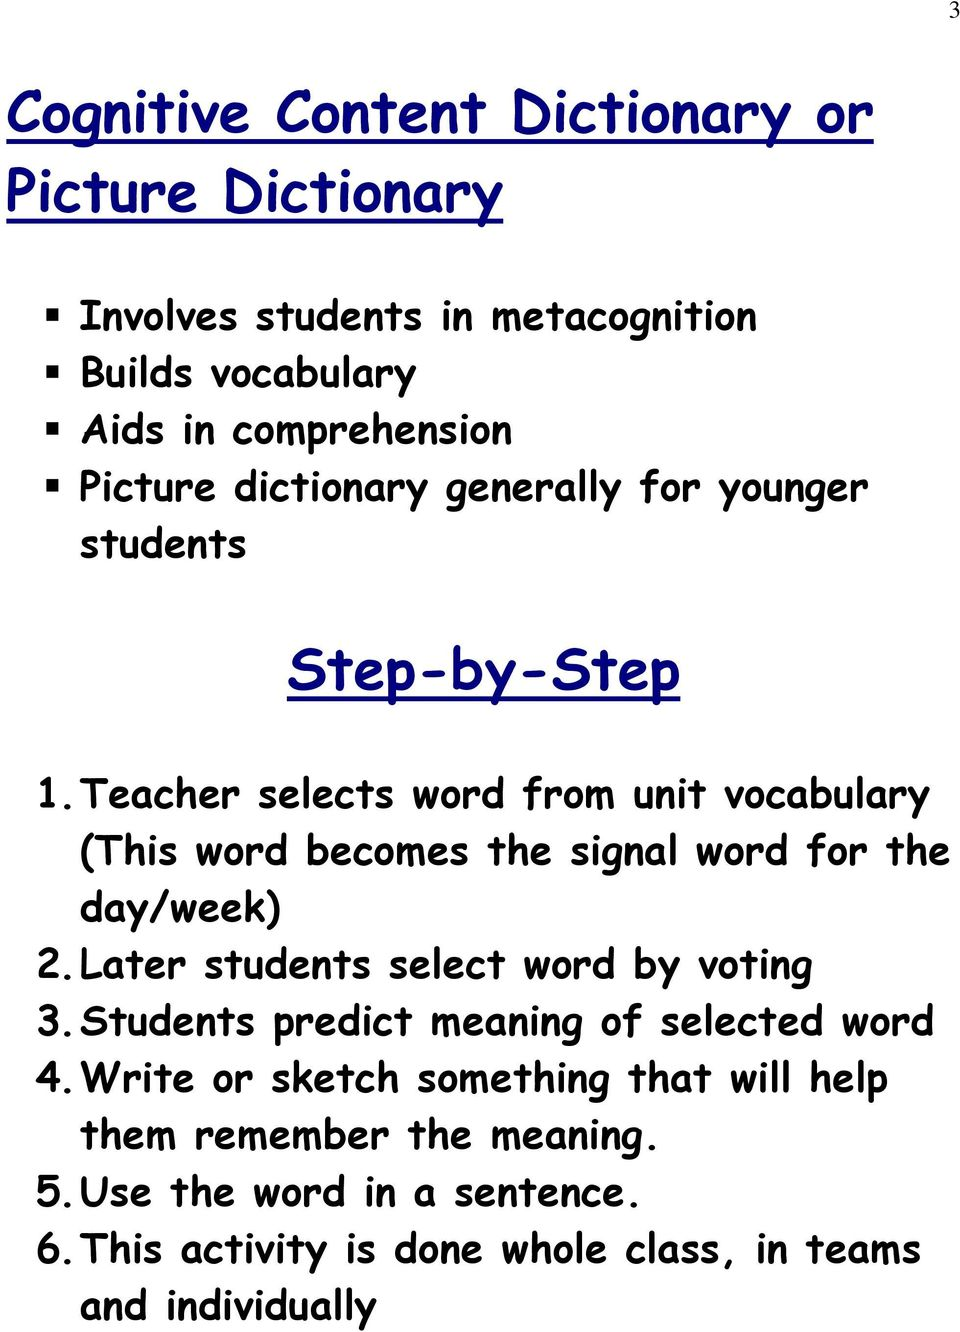 Teacher selects word from unit vocabulary (This word becomes the signal word for the day/week) 2.